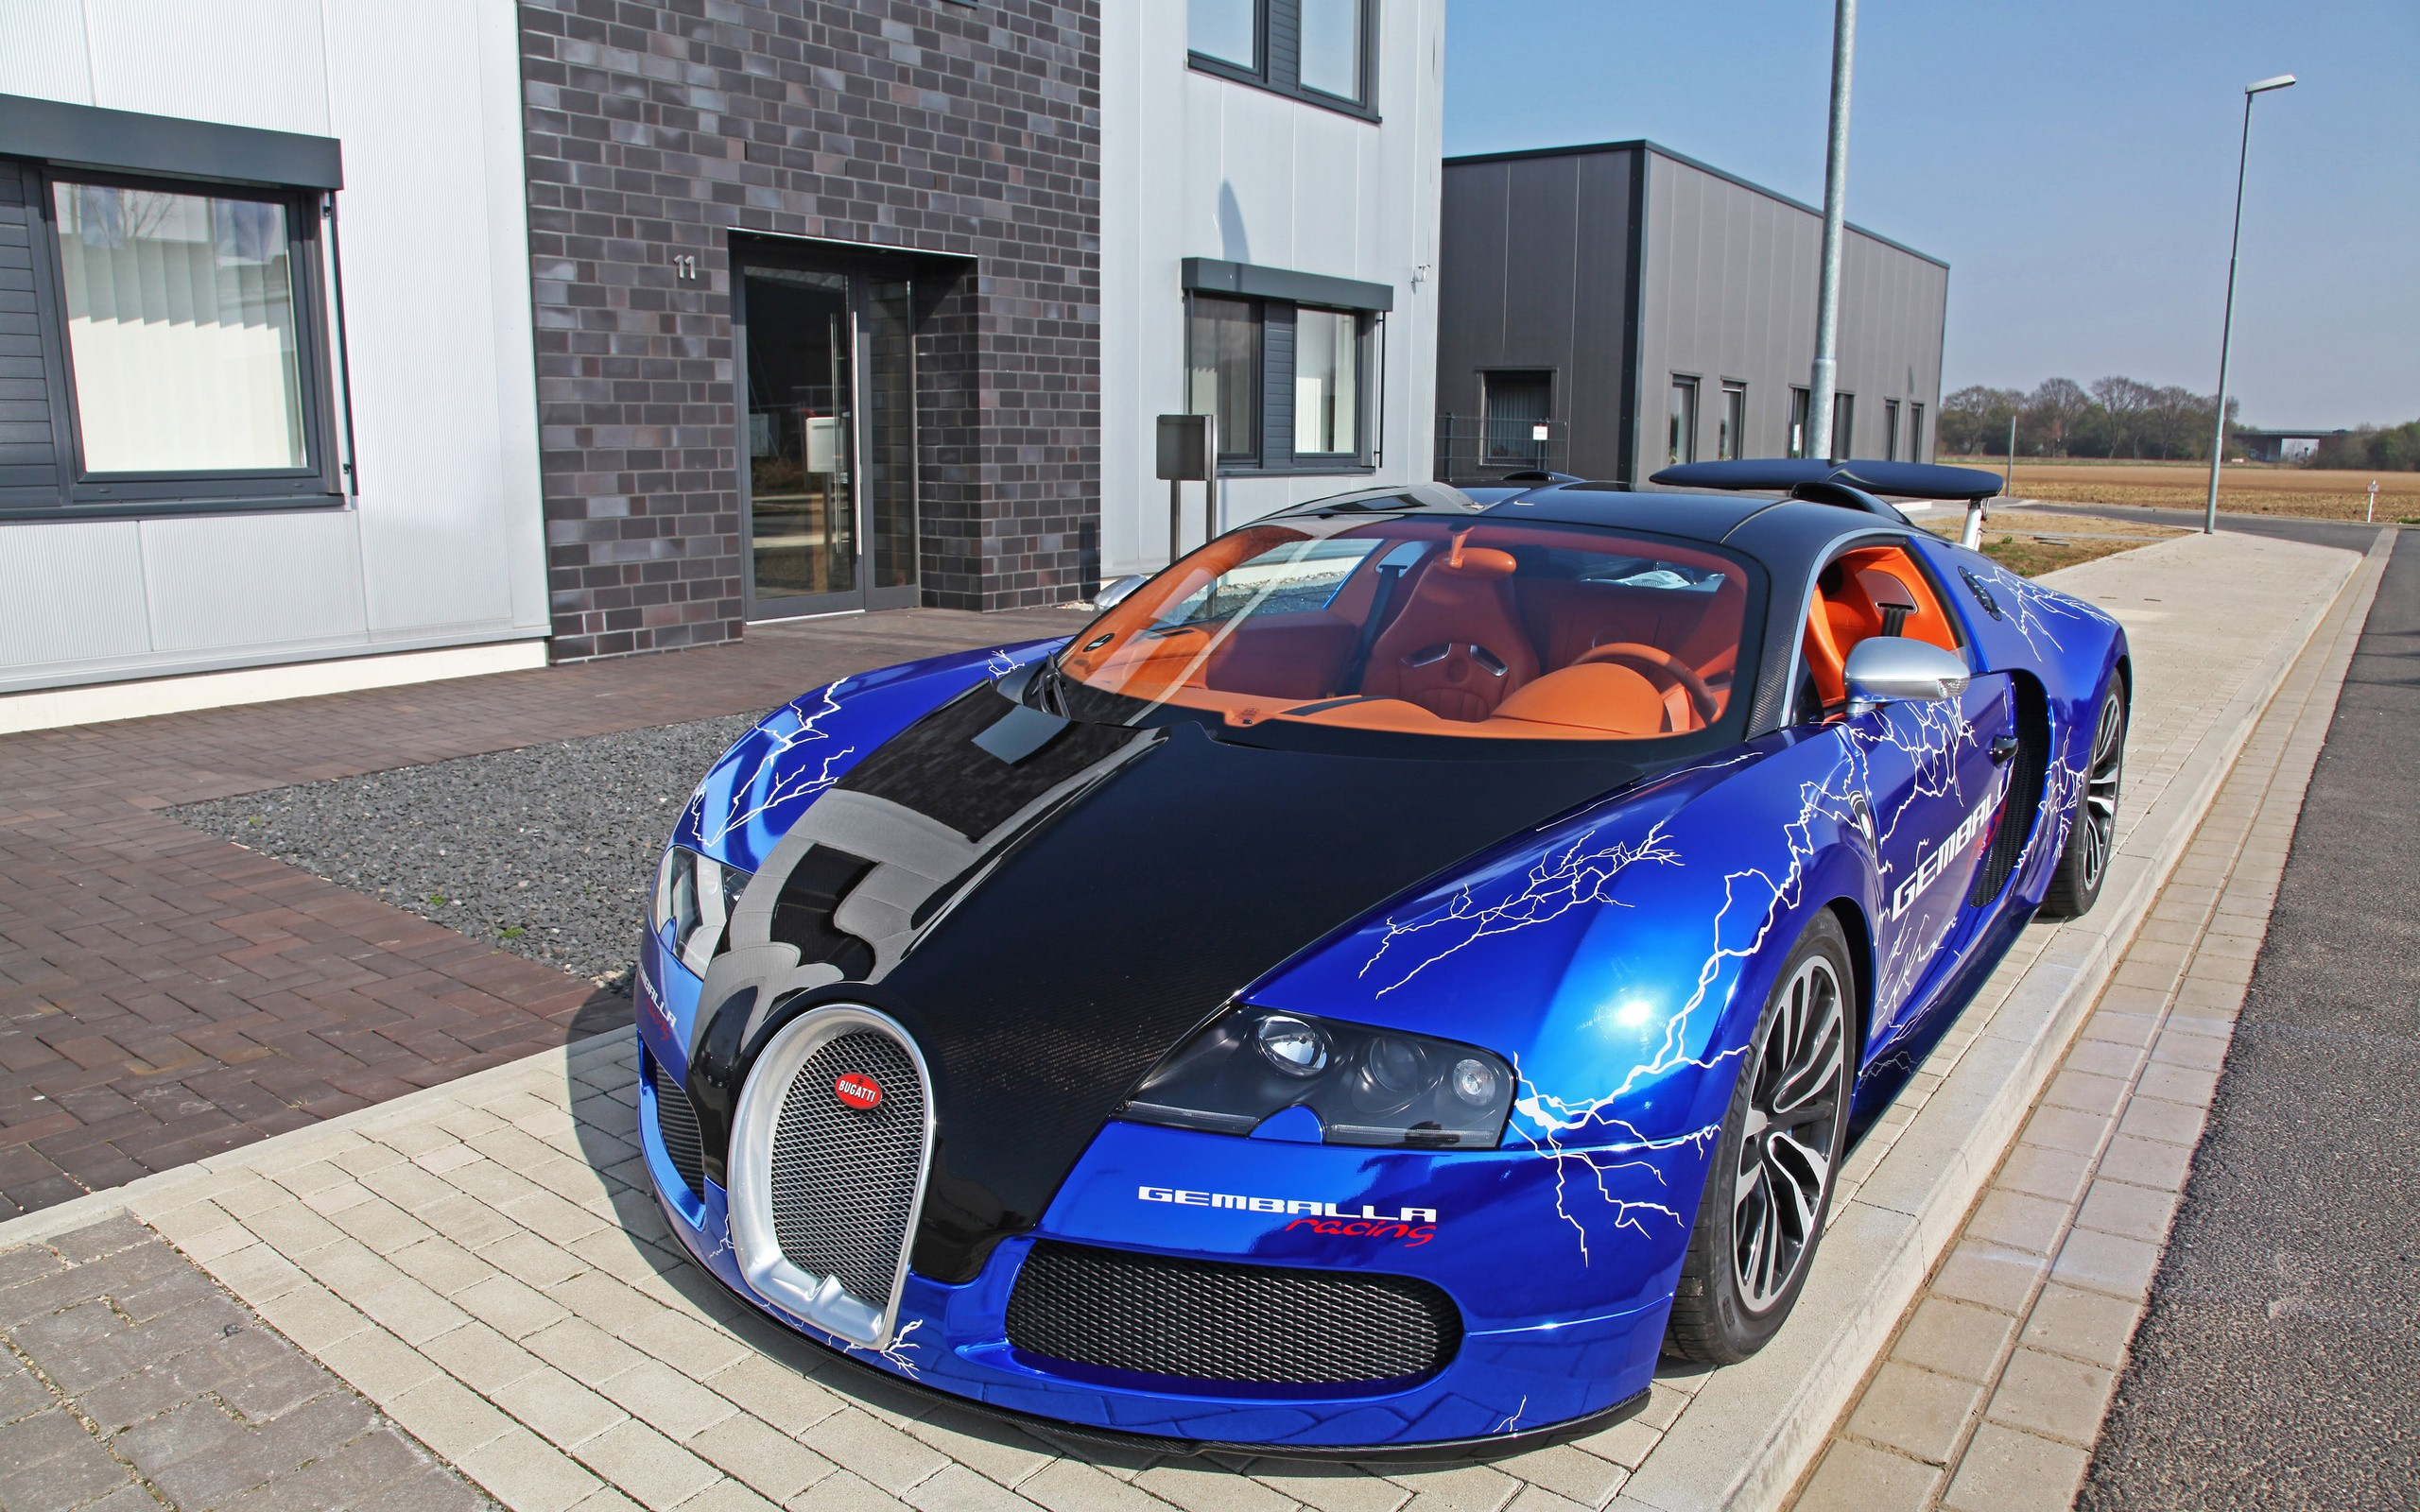 214 bugatti veyron hd wallpapers | background images - wallpaper abyss